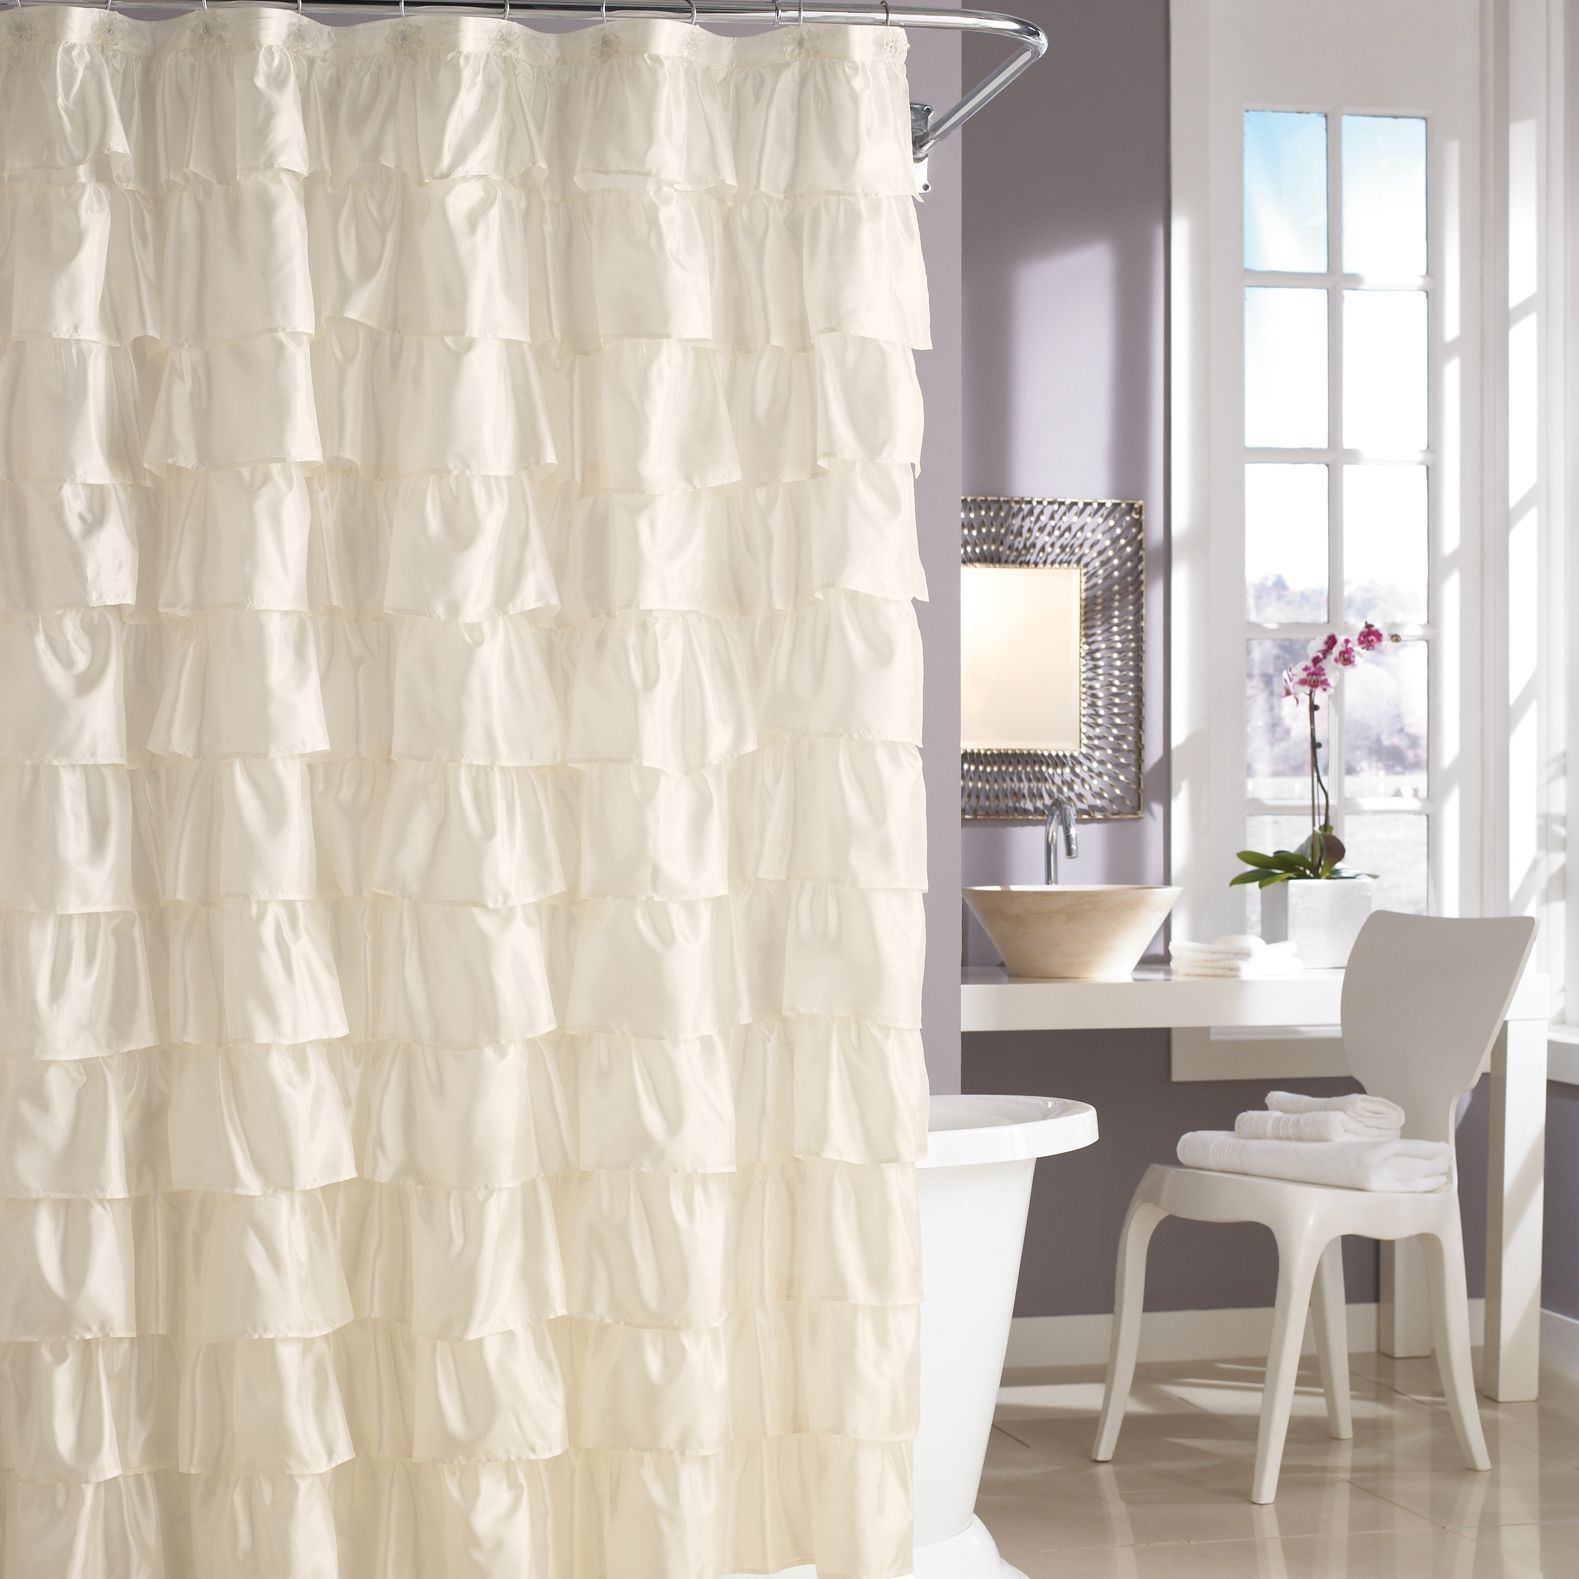 Steve Madden shower curtain?! $29.99